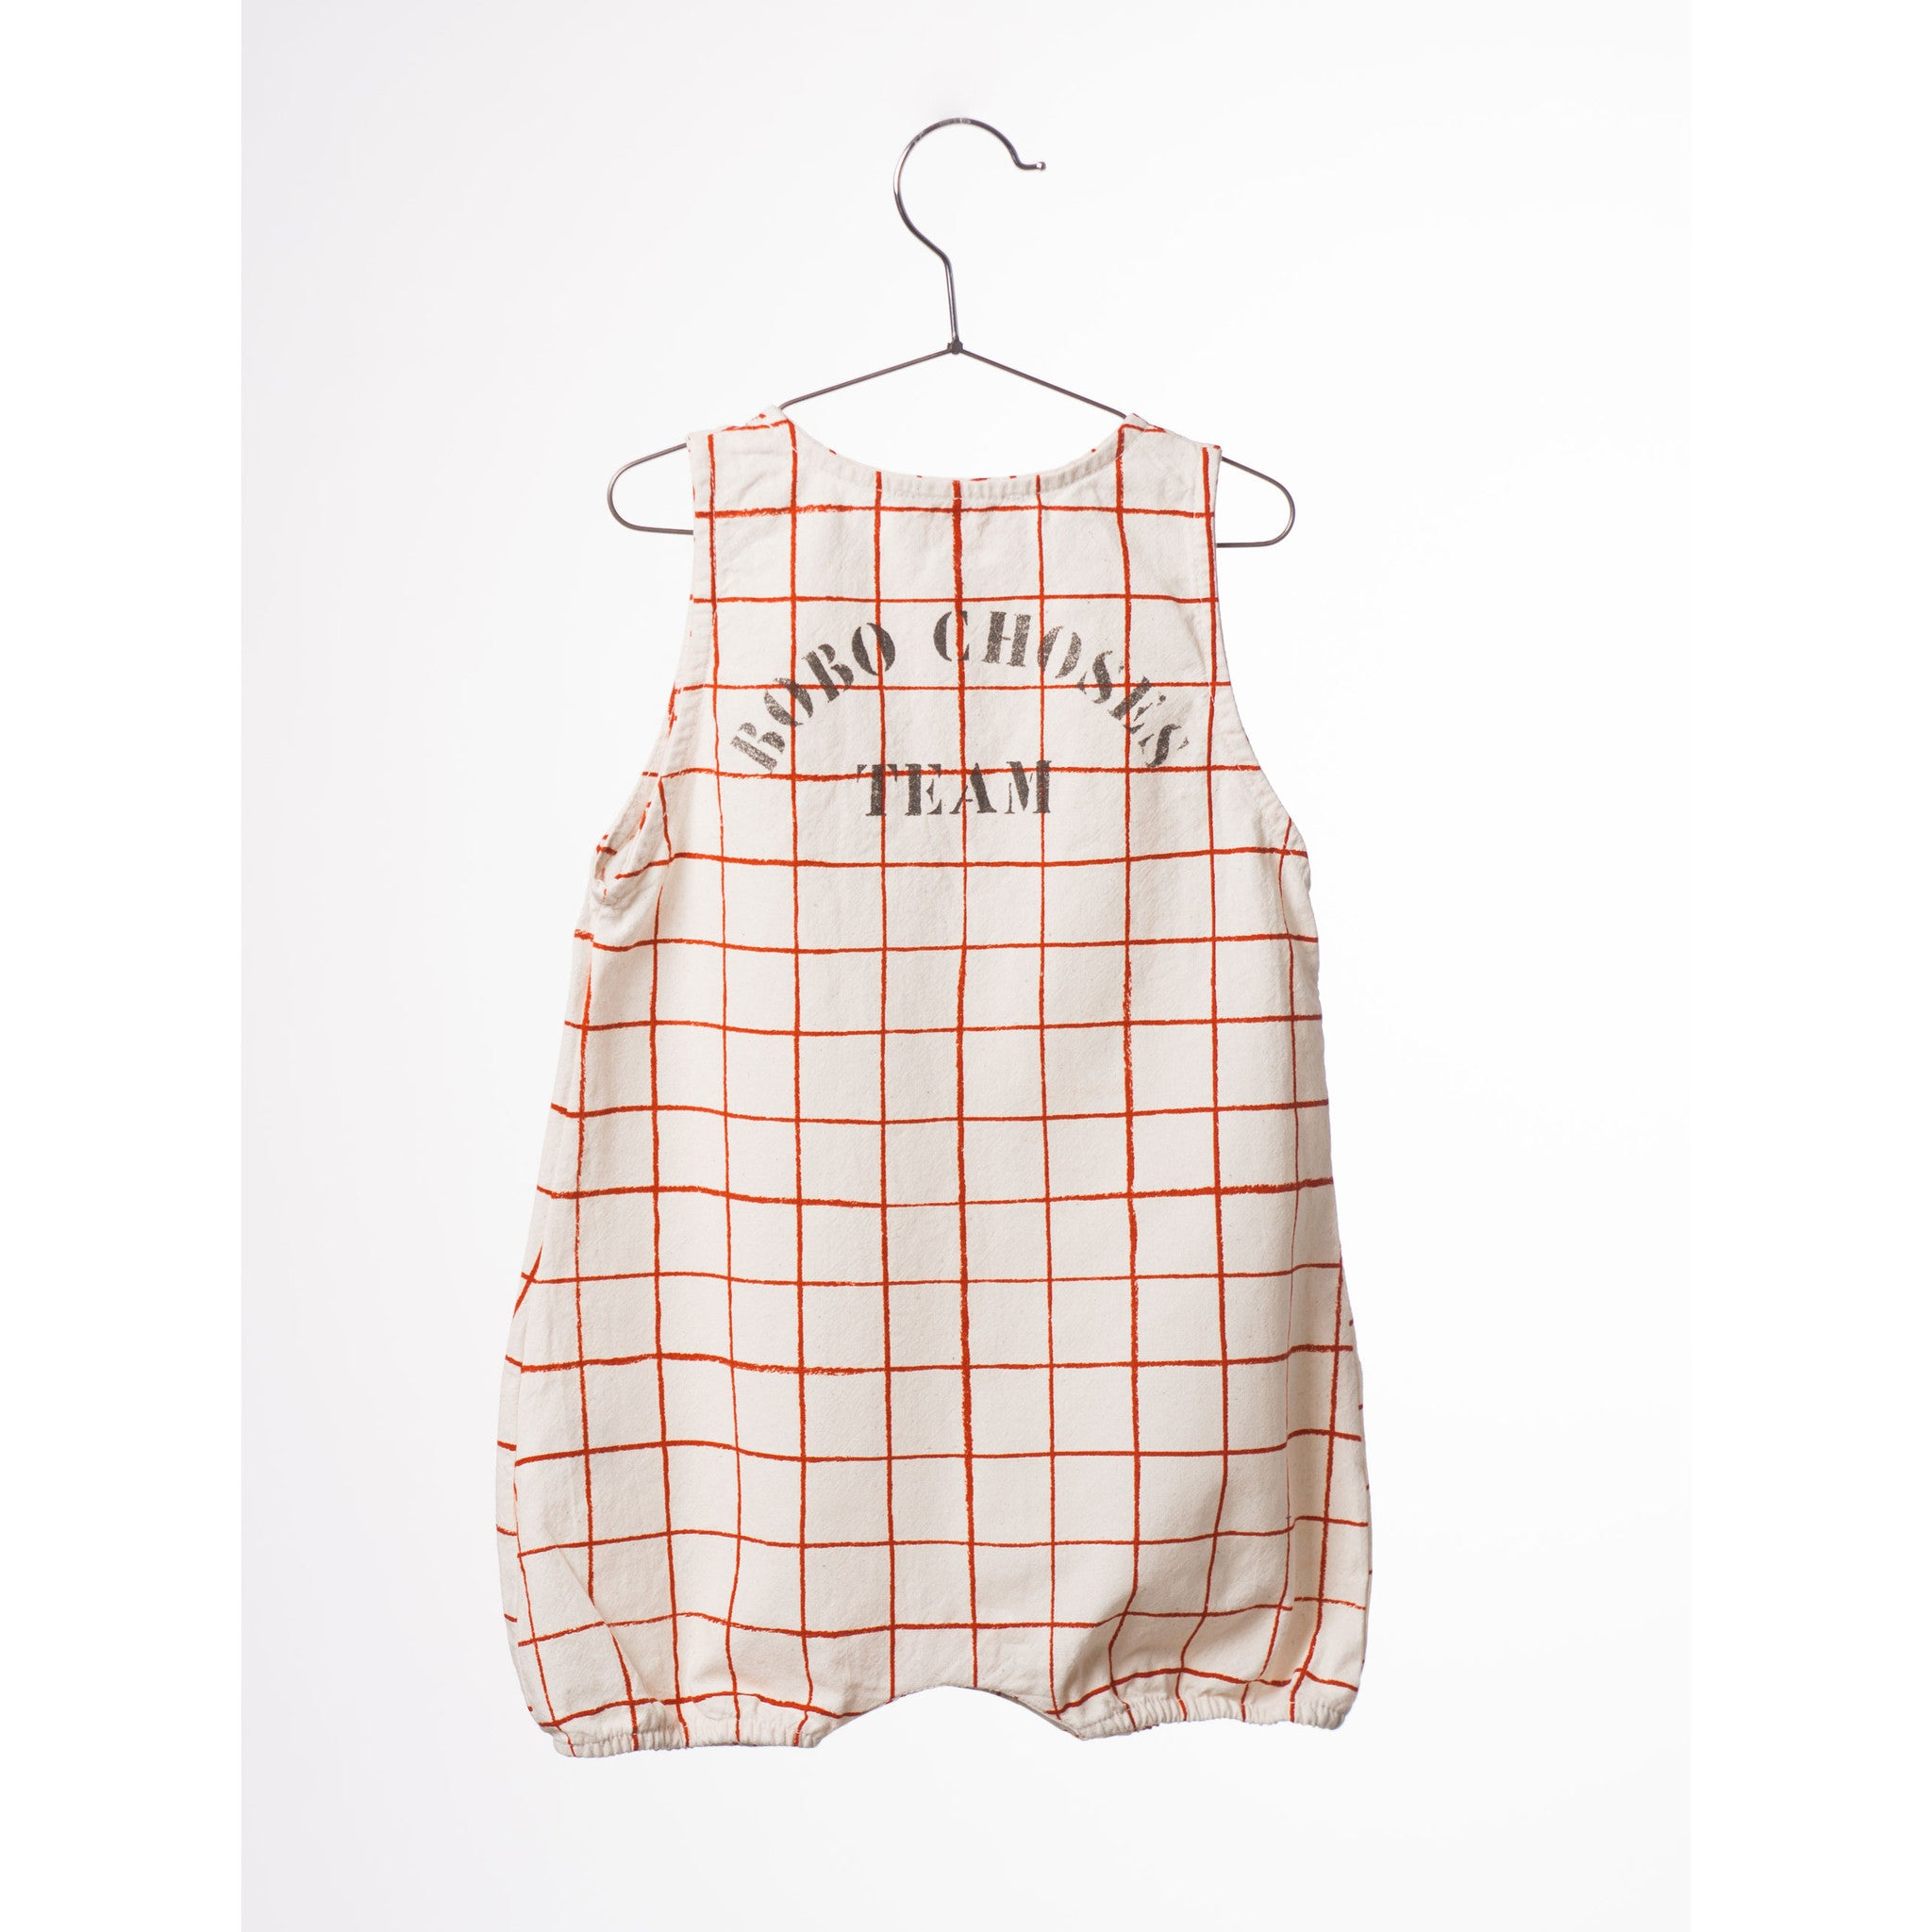 Bobo Choses BC TEAM Net Baby Romper - Ladida